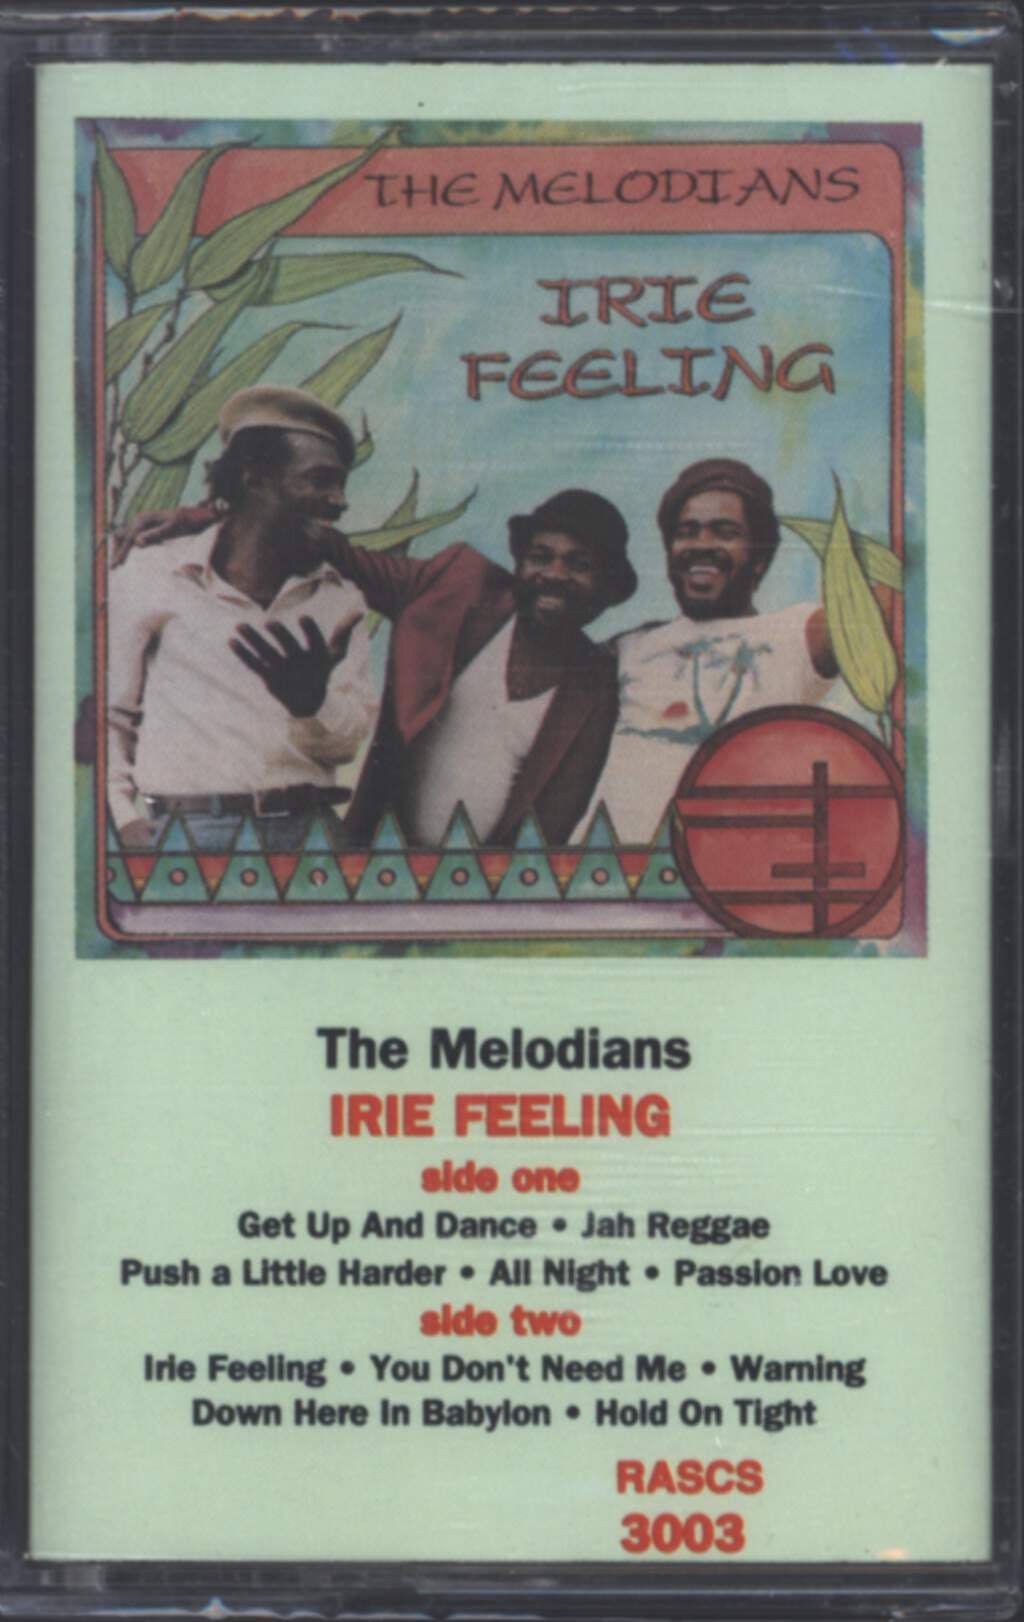 The Melodians: Irie Feeling, Compact Cassette